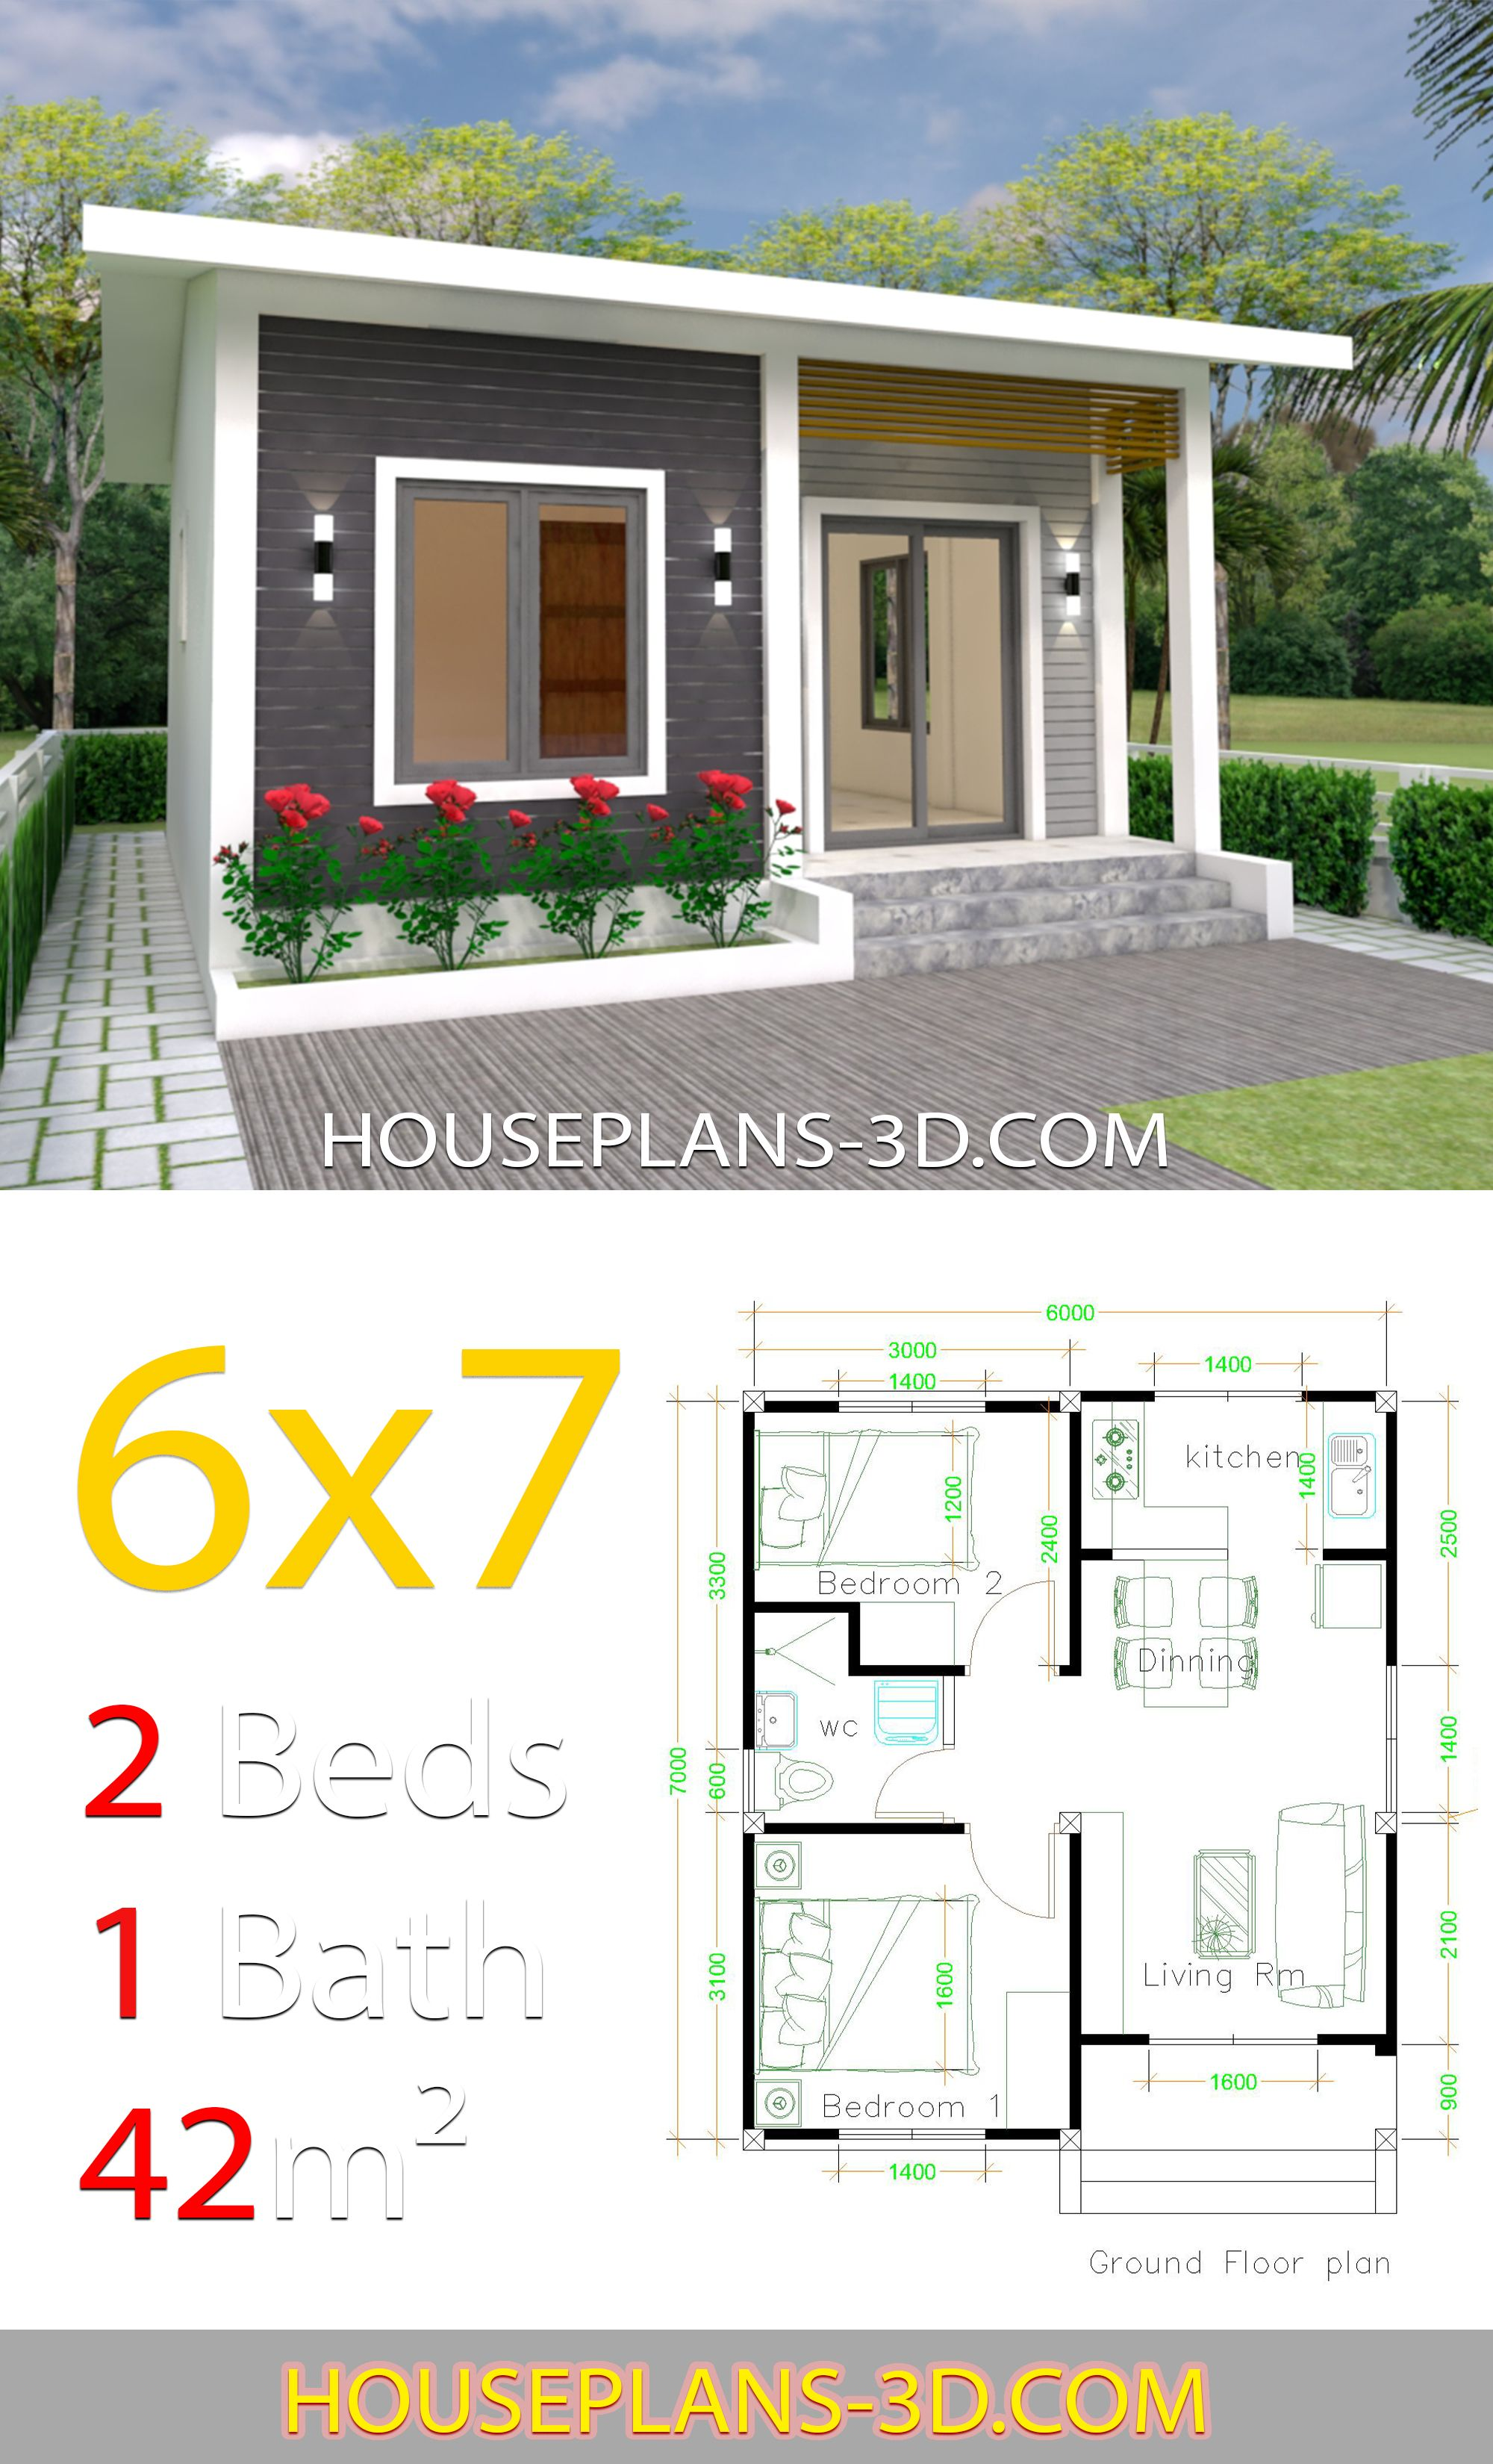 House Design 6x7 With 2 Bedrooms House Plans 3d In 2020 House Plans Small House Layout Simple House Design